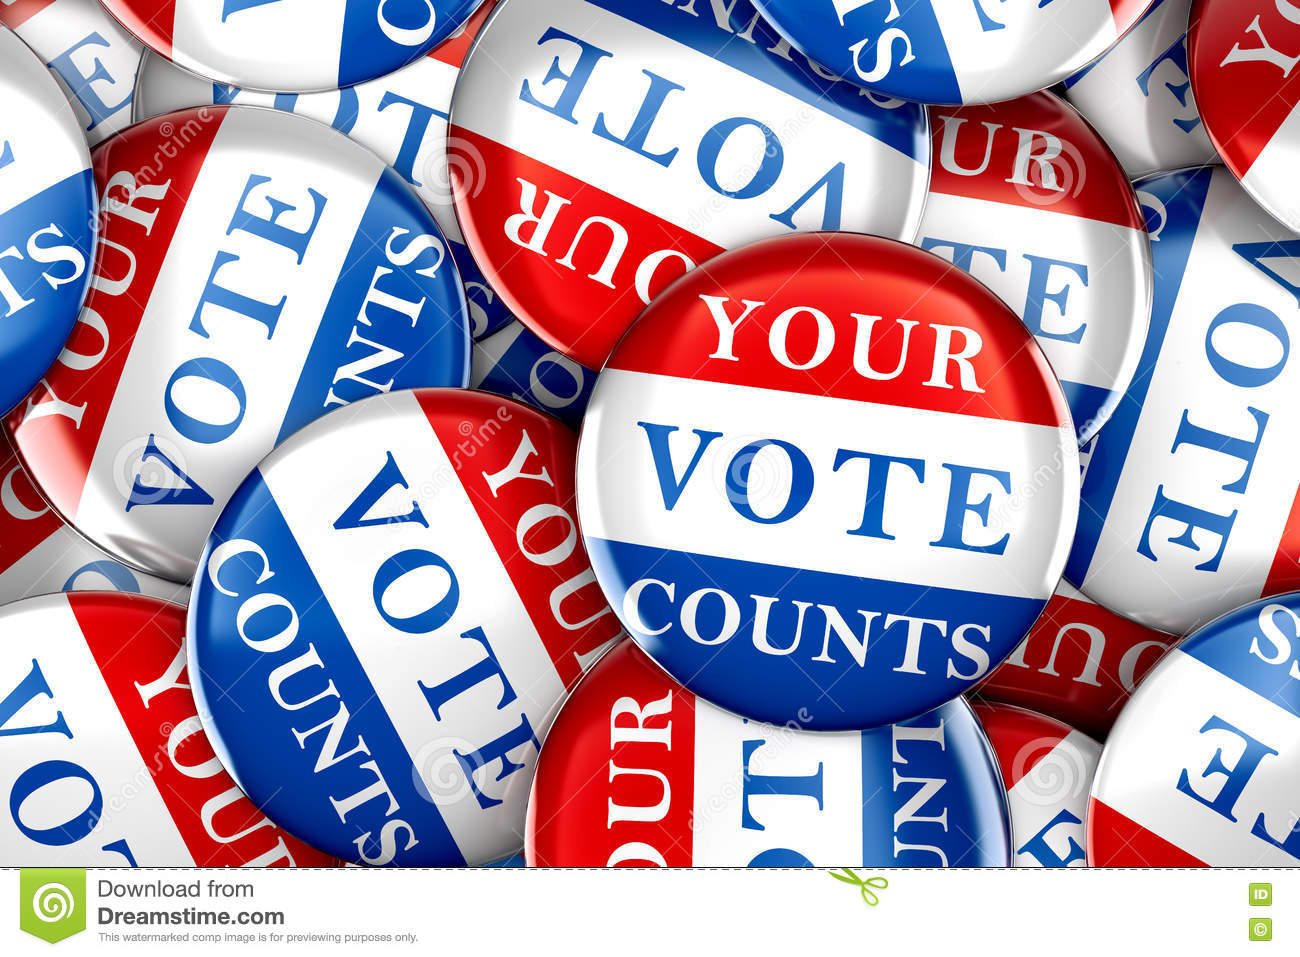 Vote buttons with Your Vote Counts